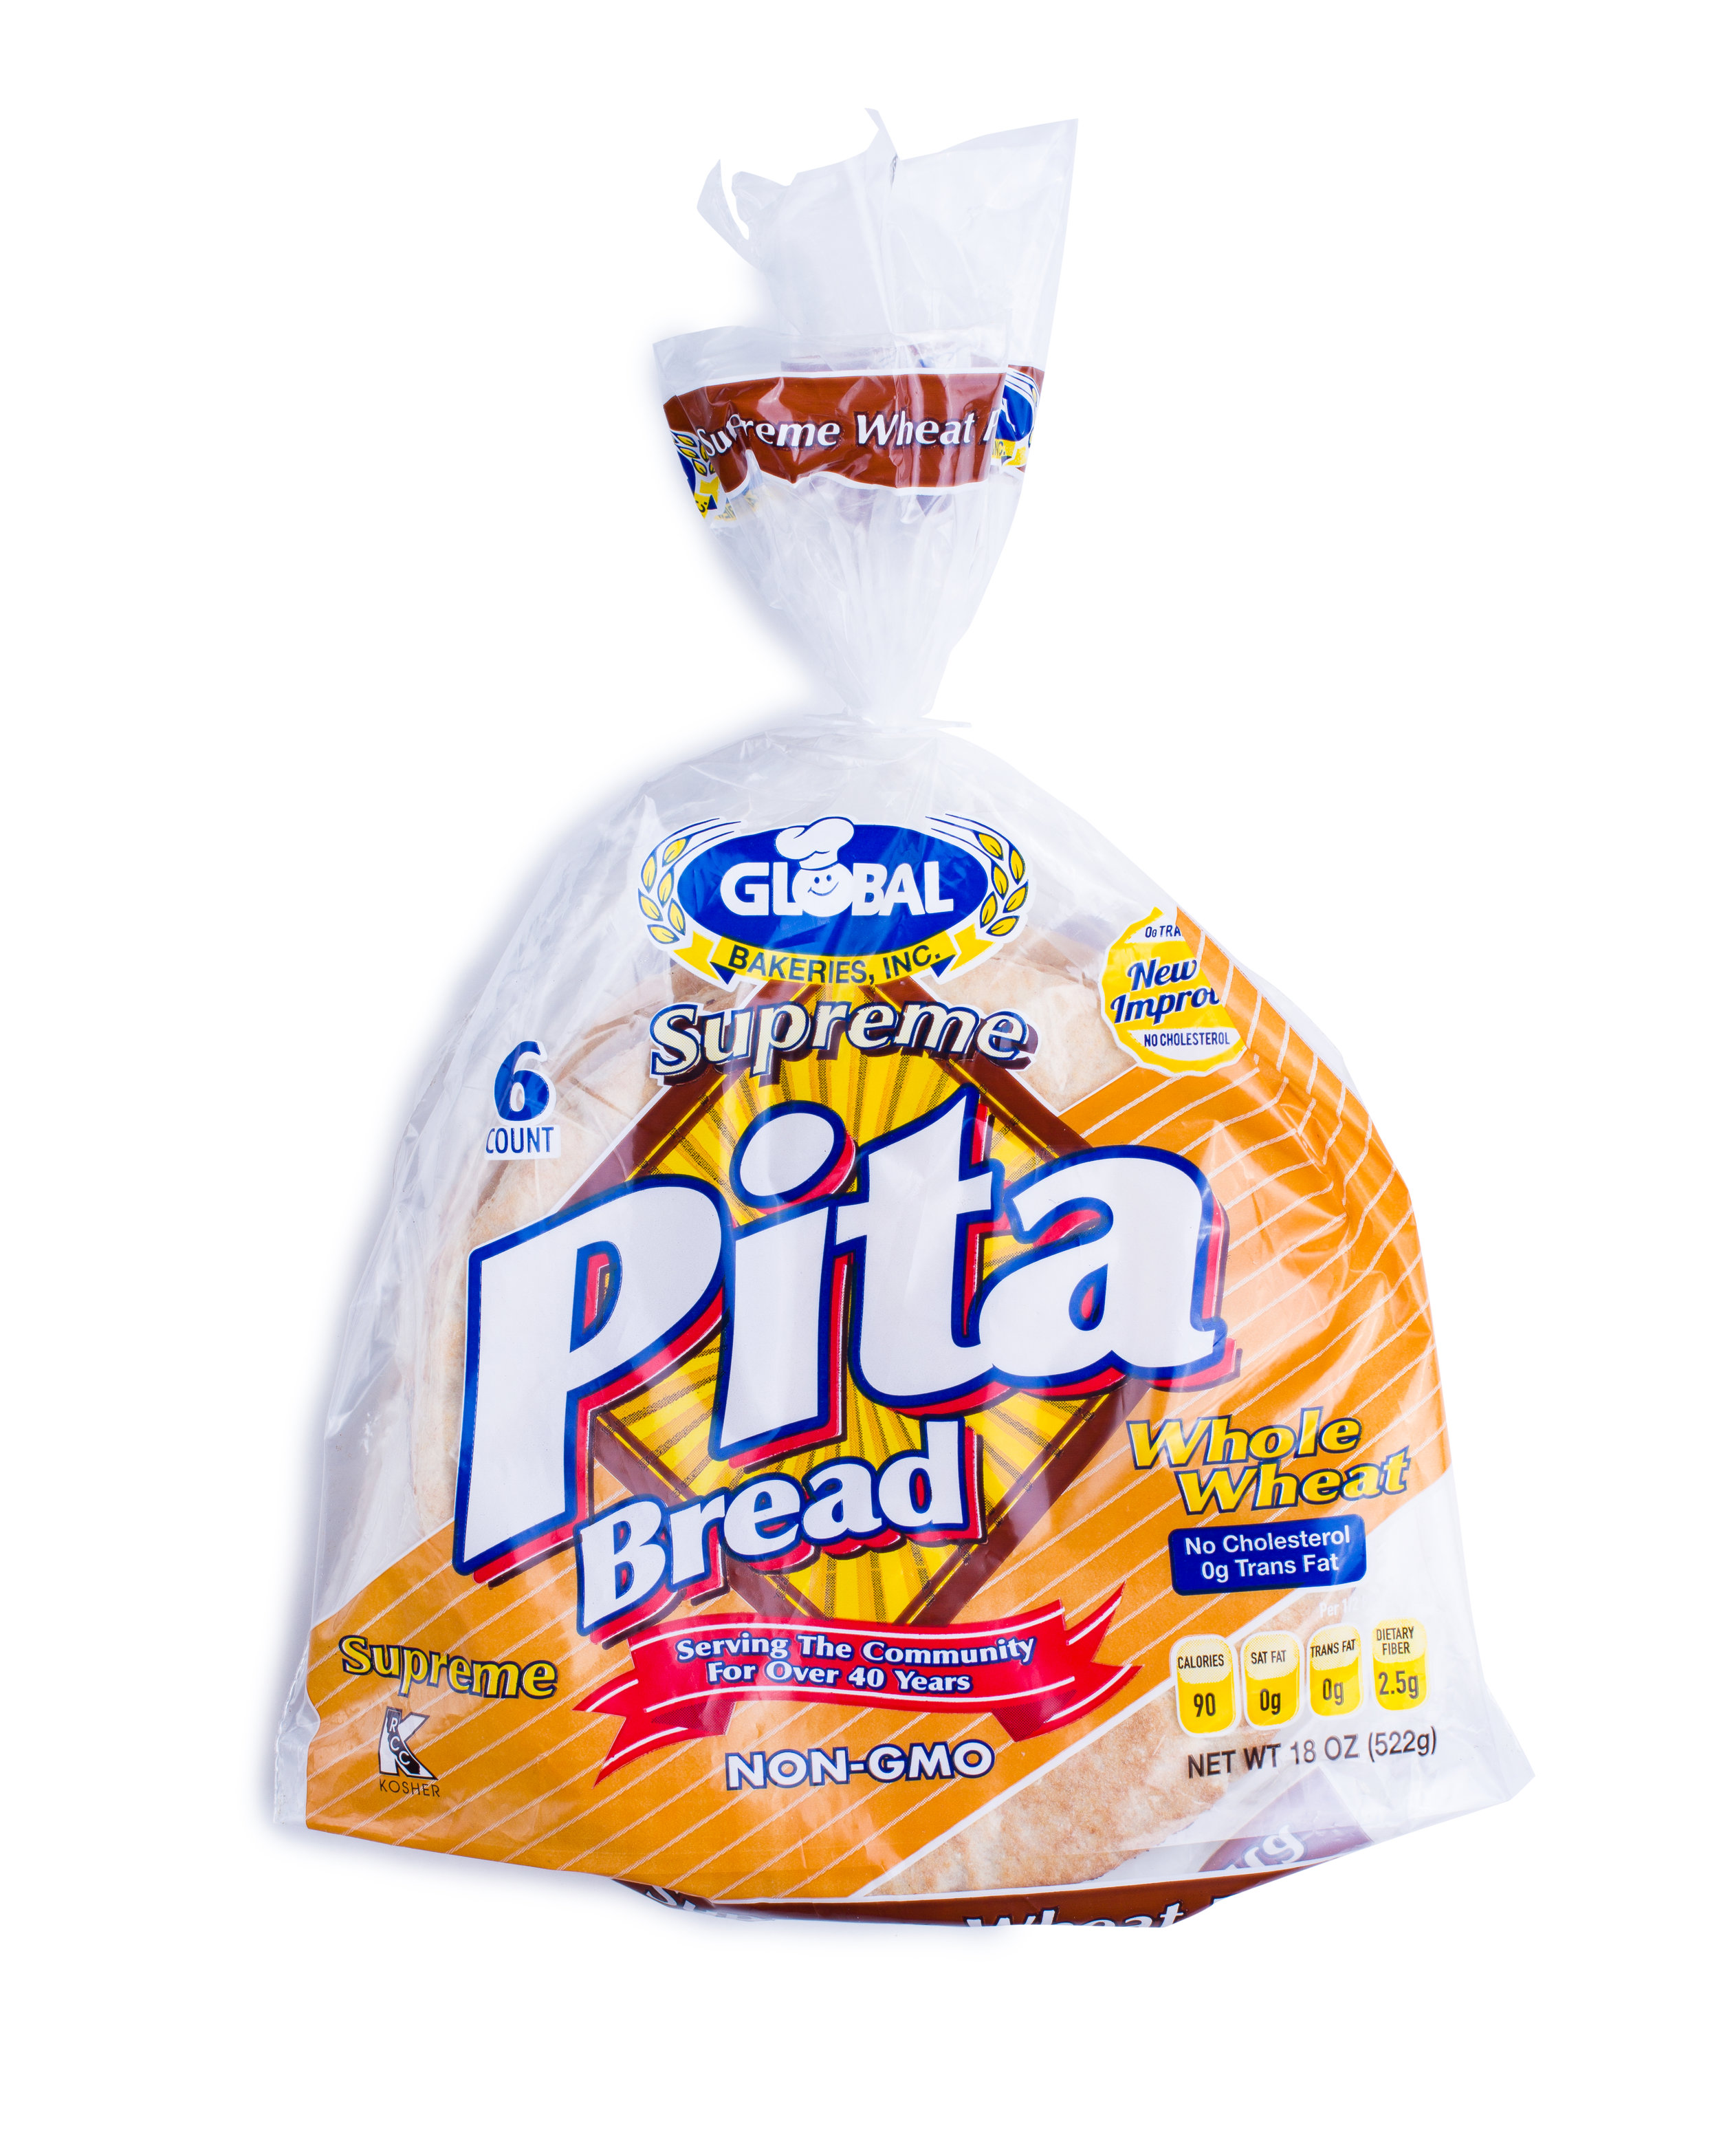 Supreme Whole Wheat Pita.jpeg